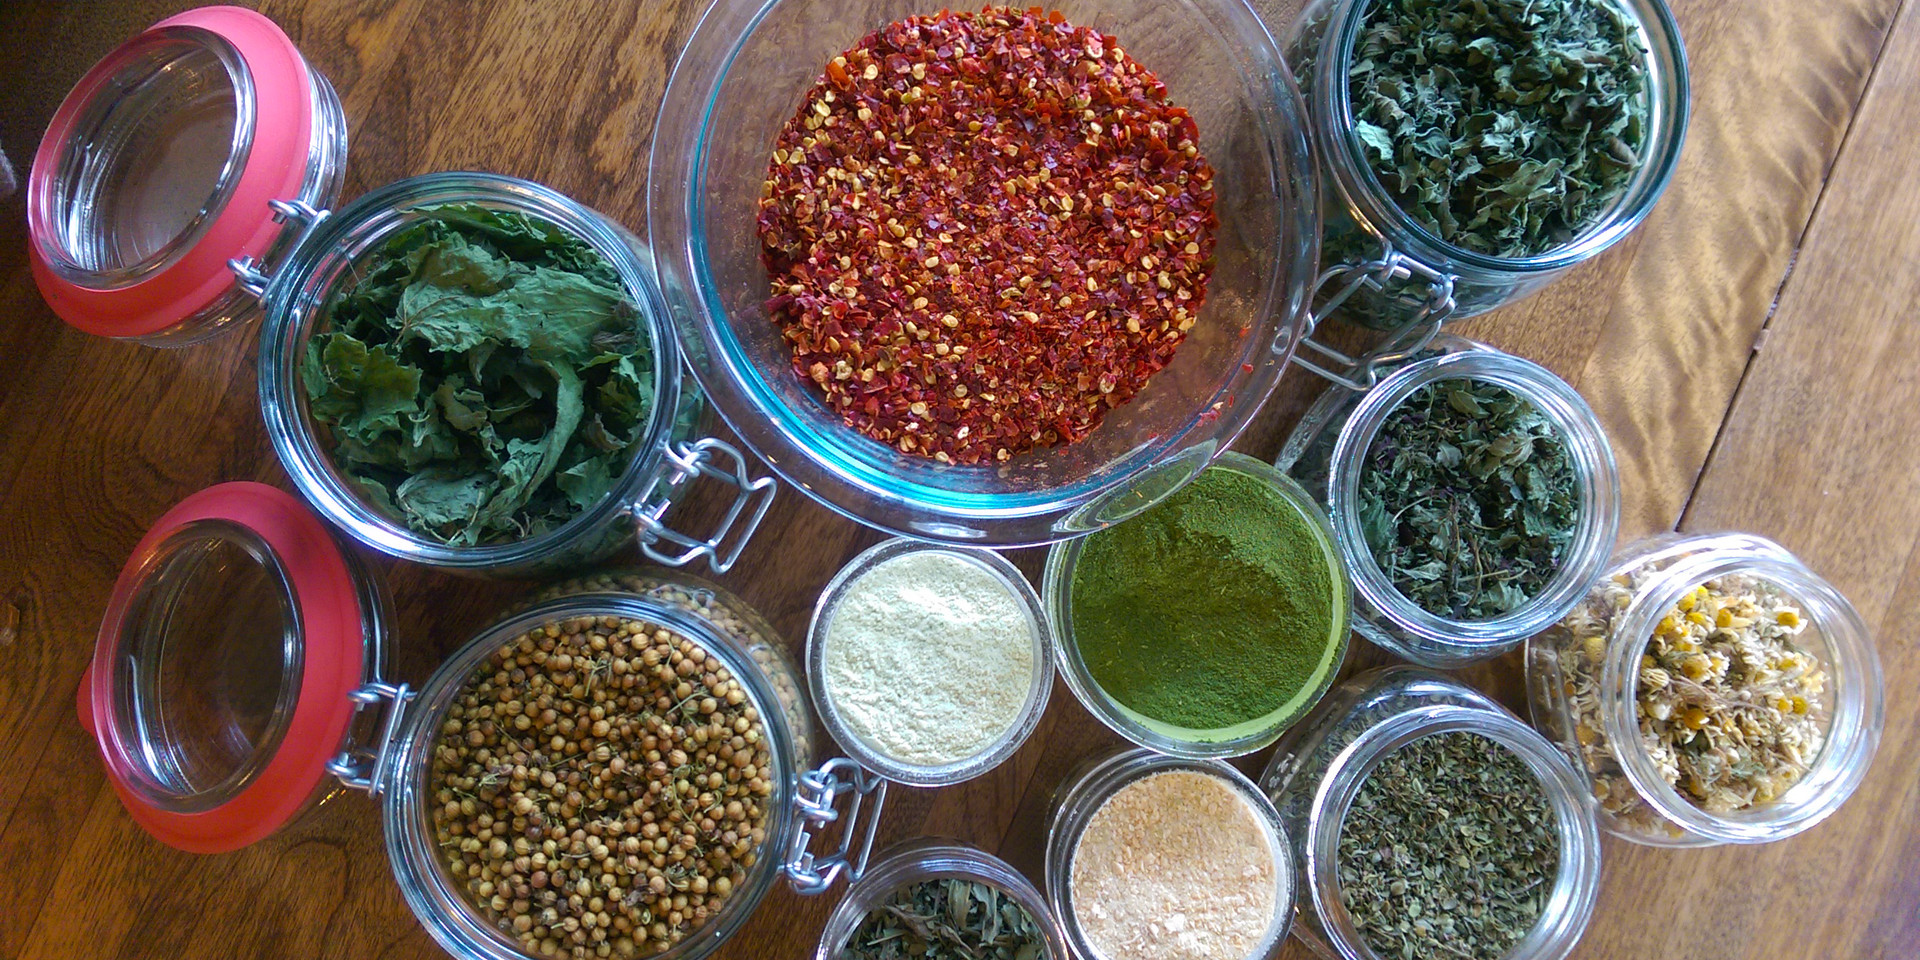 Mix Spices from Keddie Farms Gardens